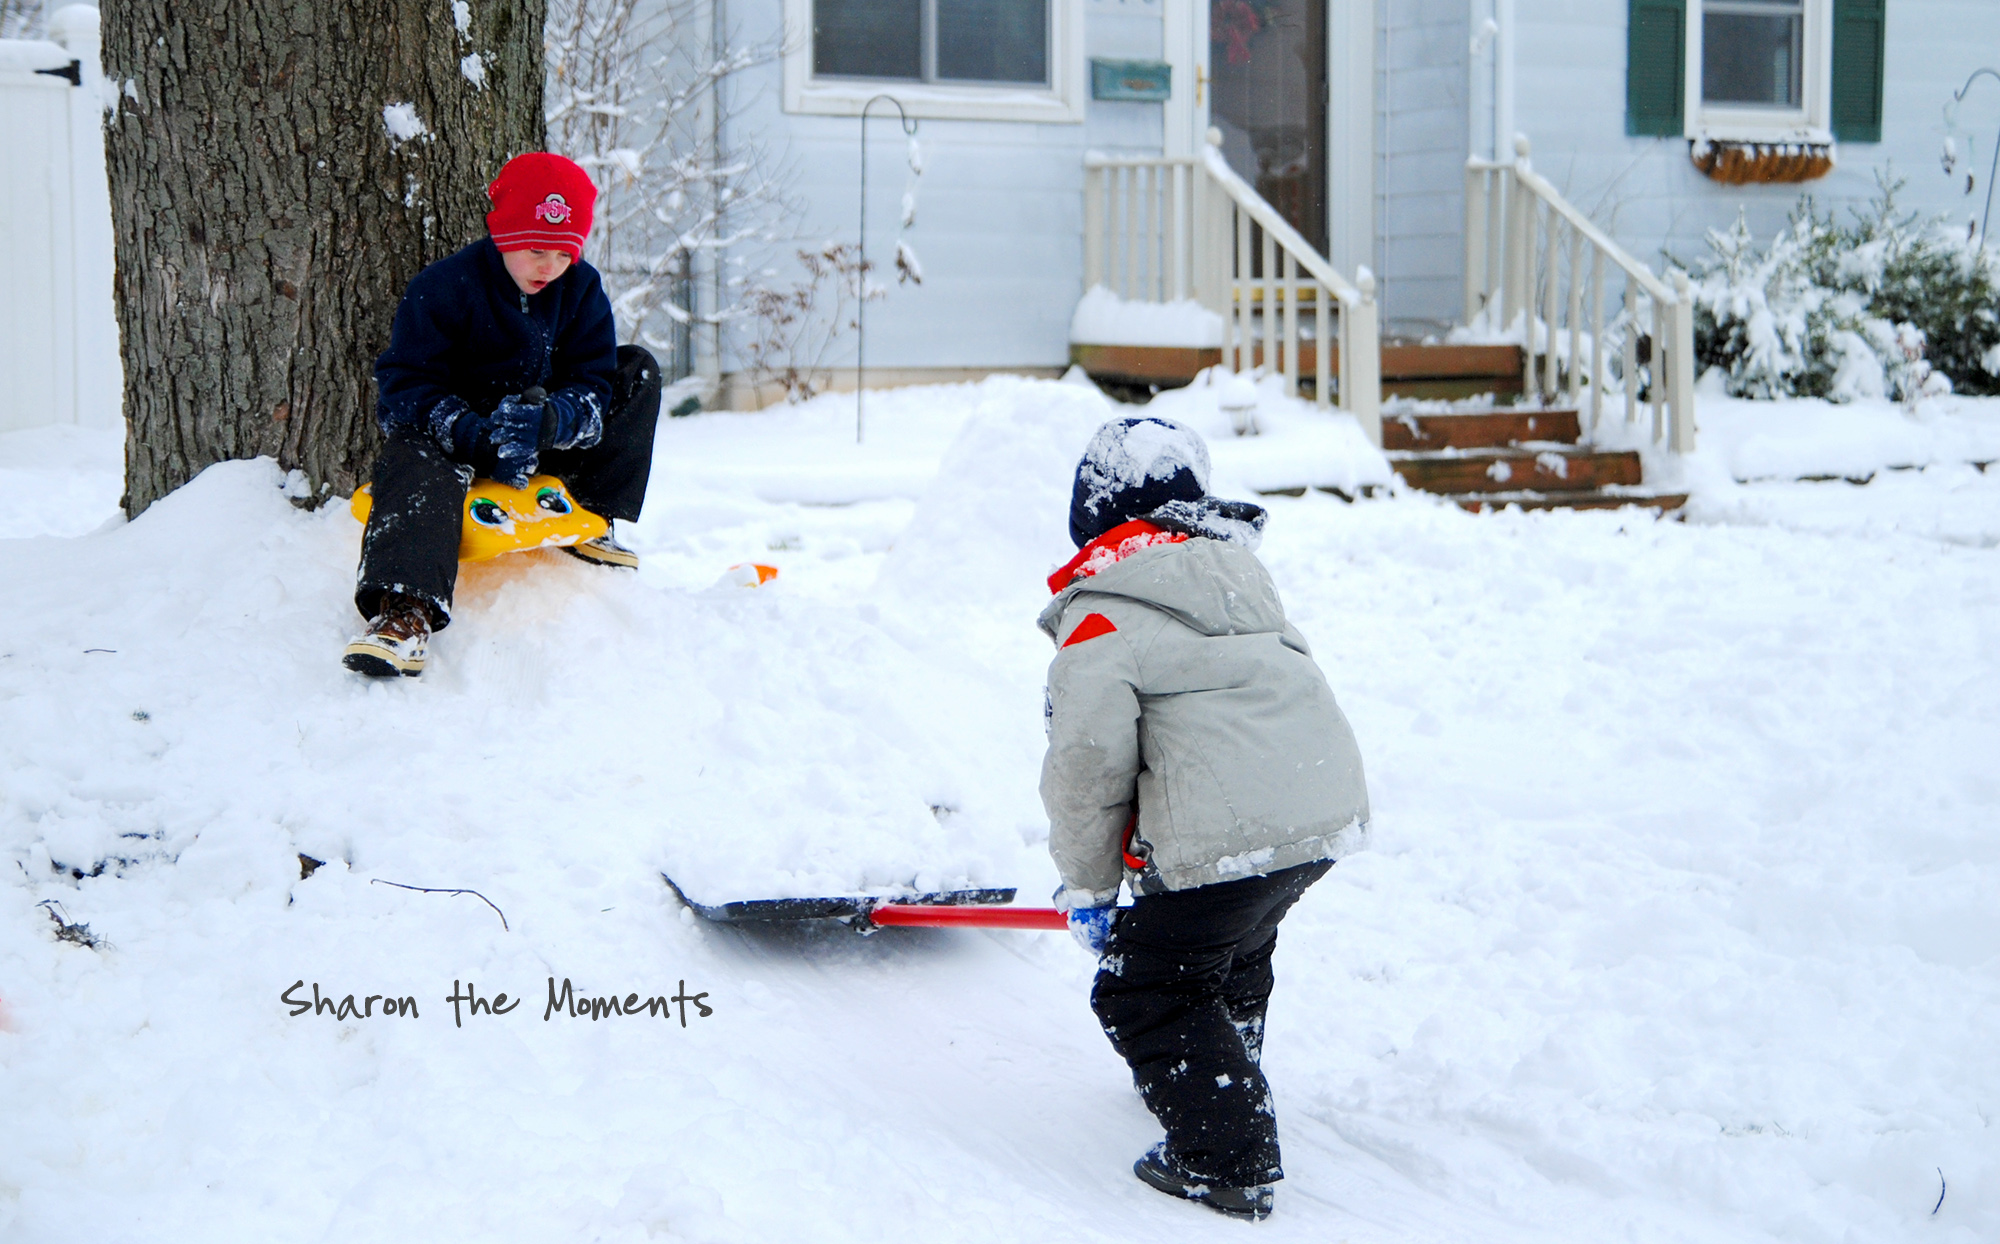 Snow Day for Making Mini Sledding Hills and Snow Angels|Sharon the Moments blog